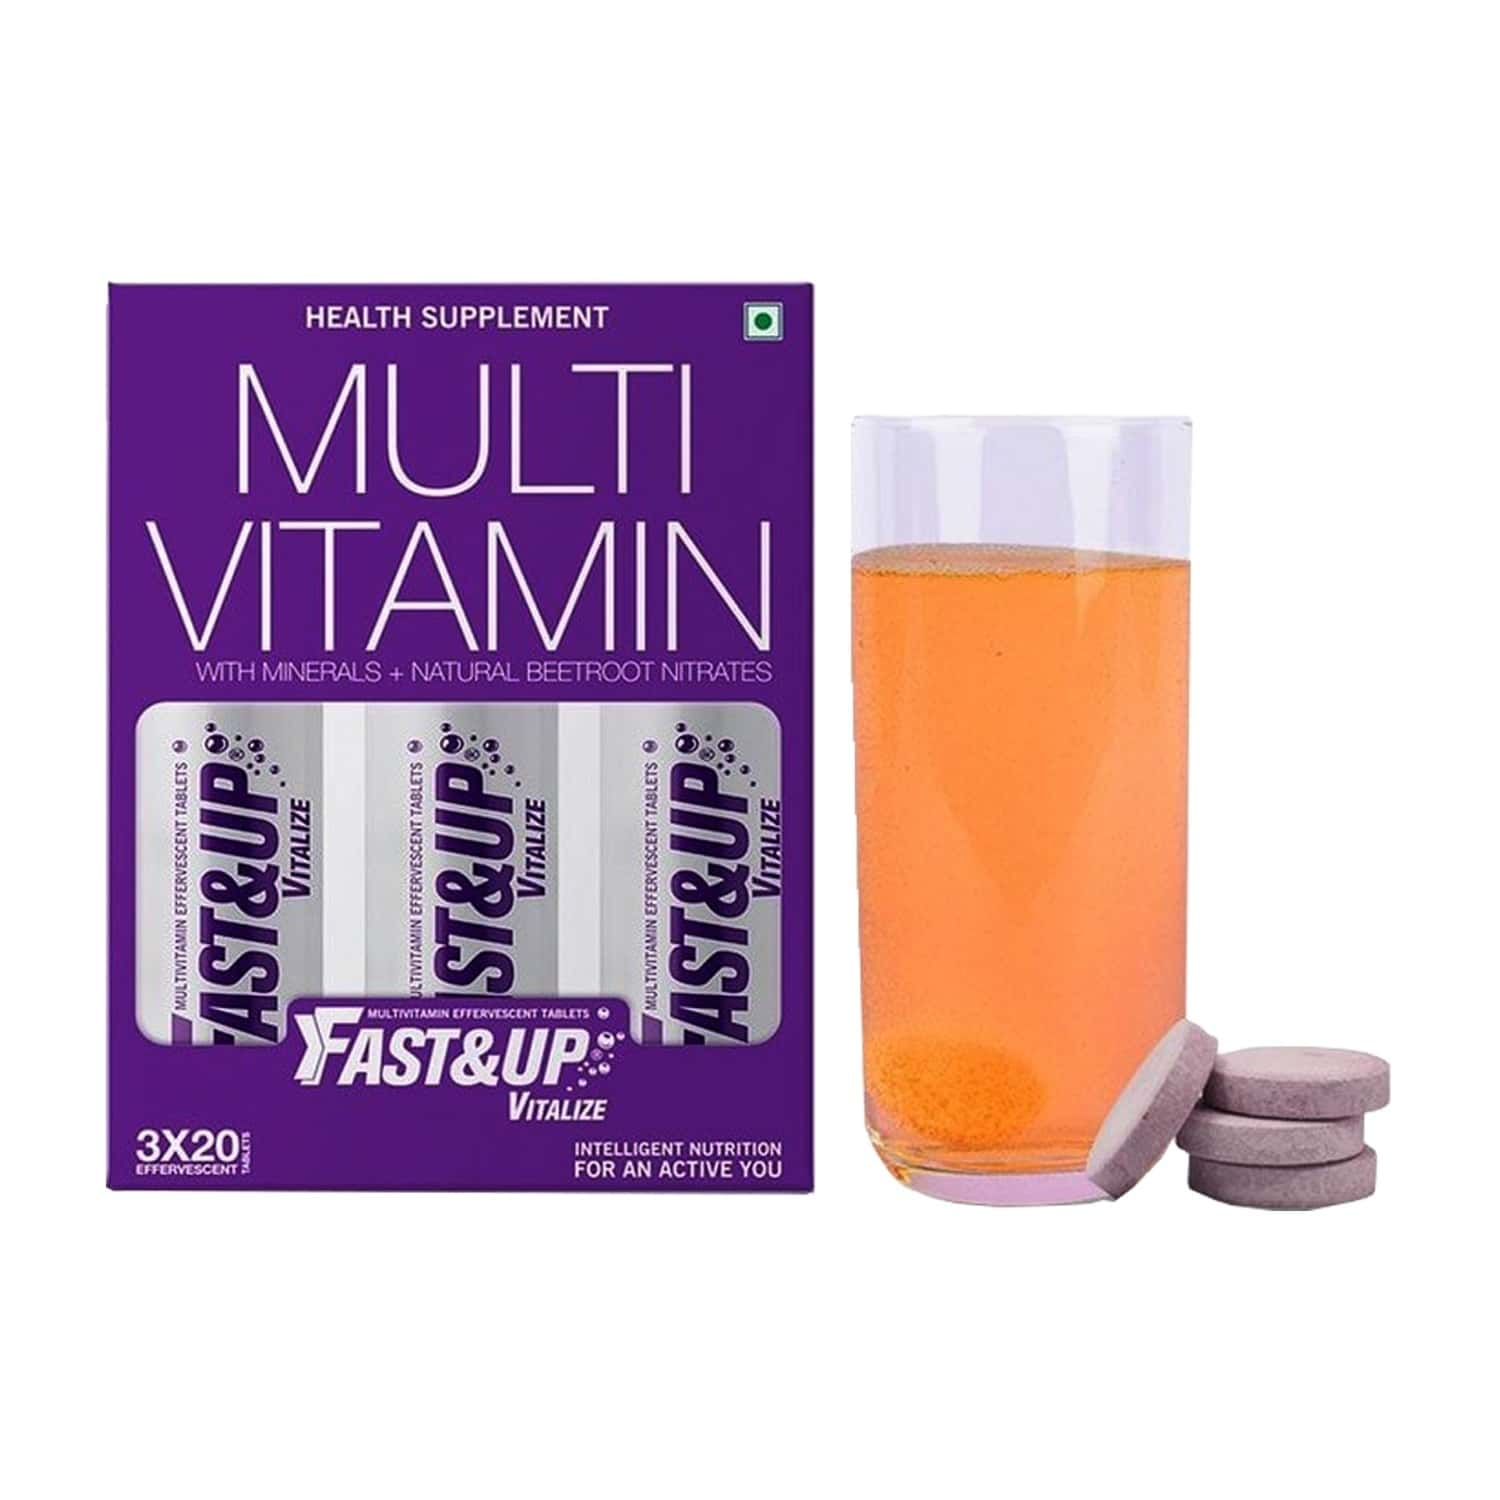 Fast&up Vitalize Daily Orange Effervescent Tablets Box Of 60